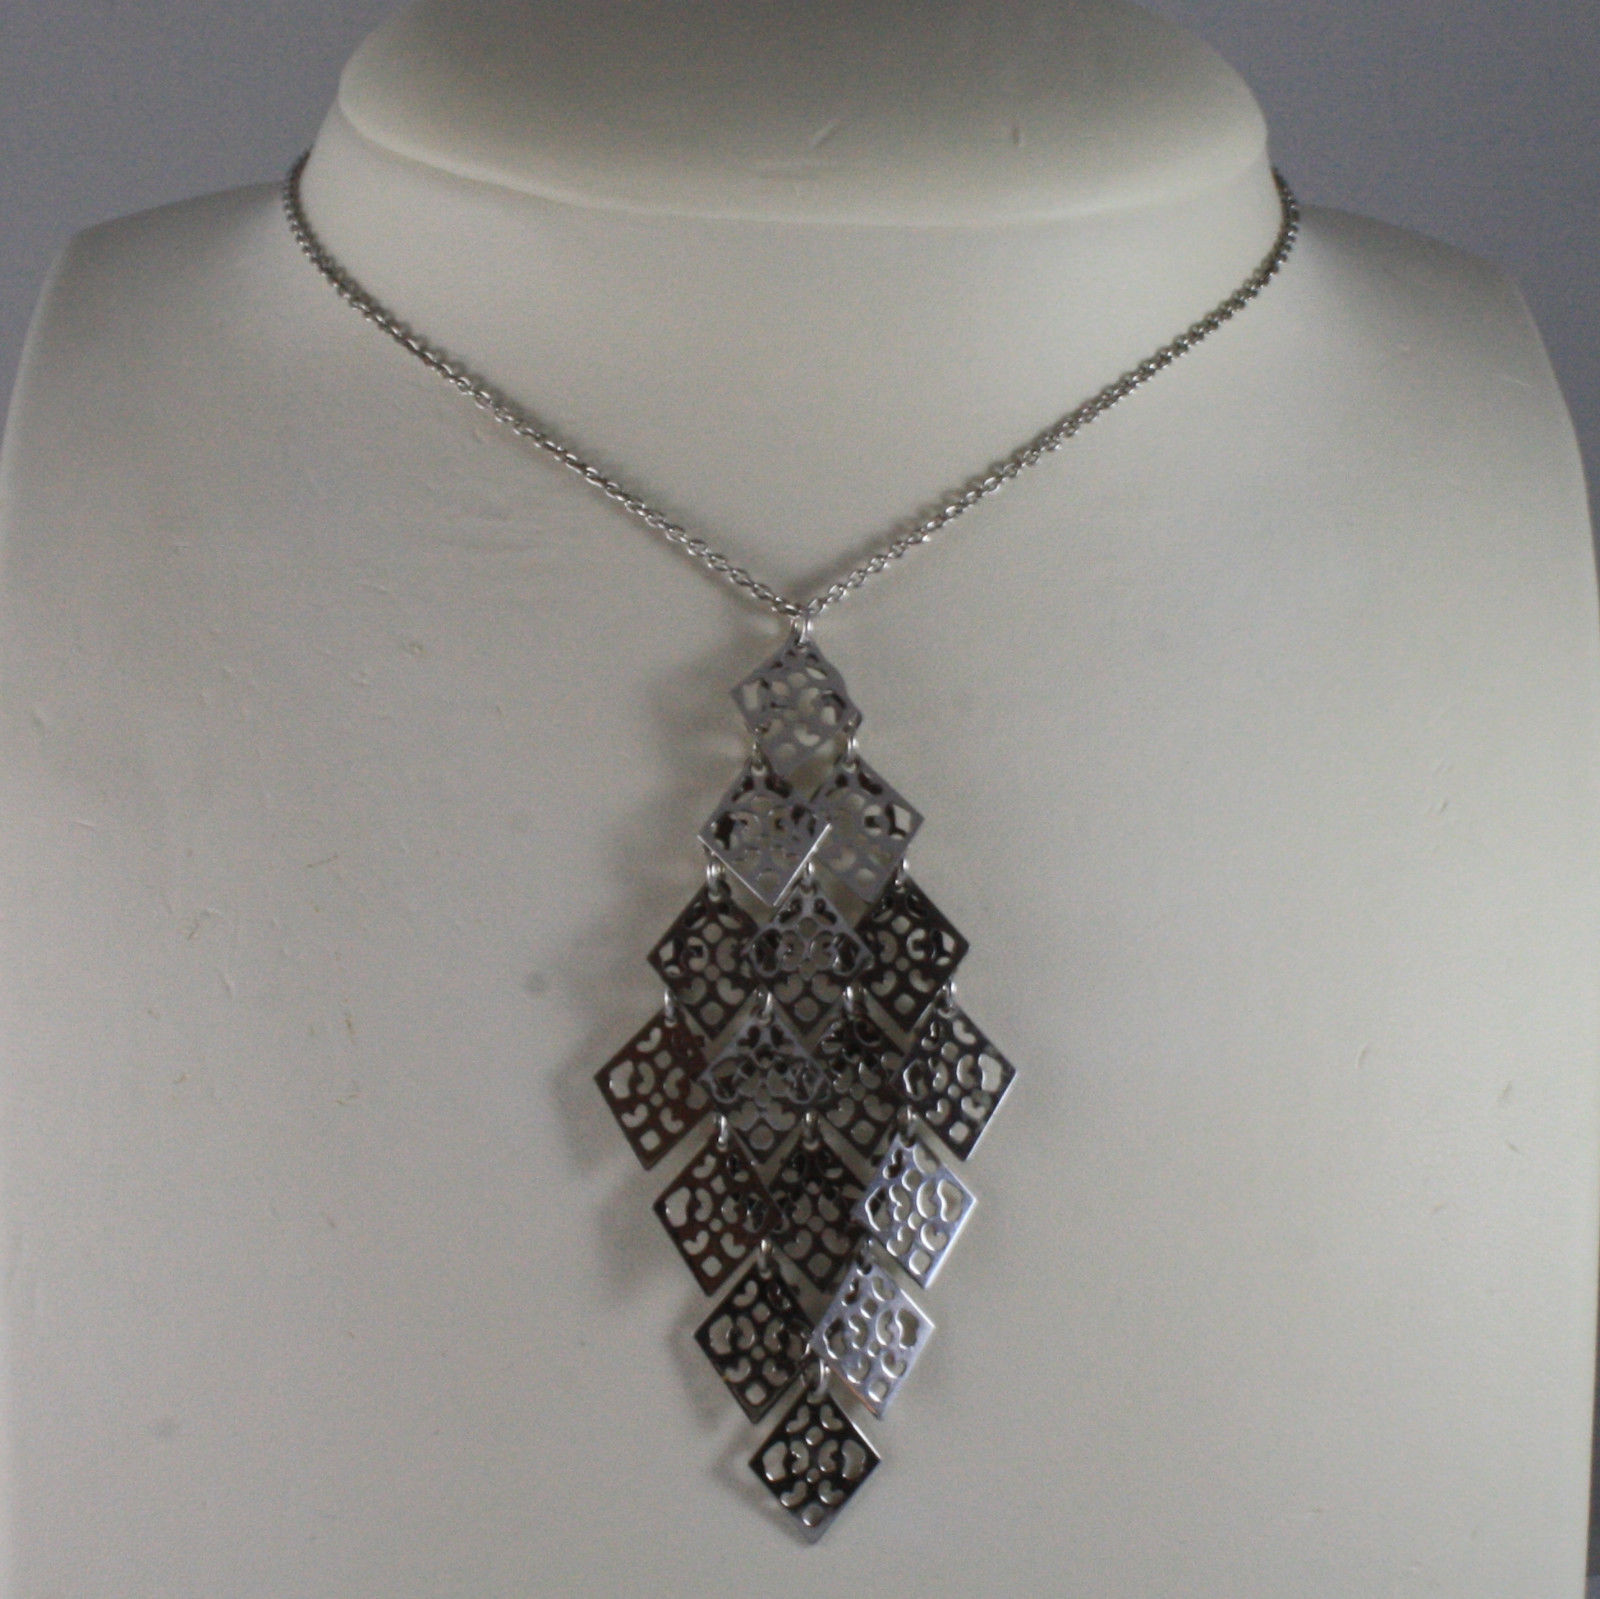 .925 SILVER RHODIUM NECKLACE WITH PENDANT WITH PERFORATED RHOMBUS 16,54 IN